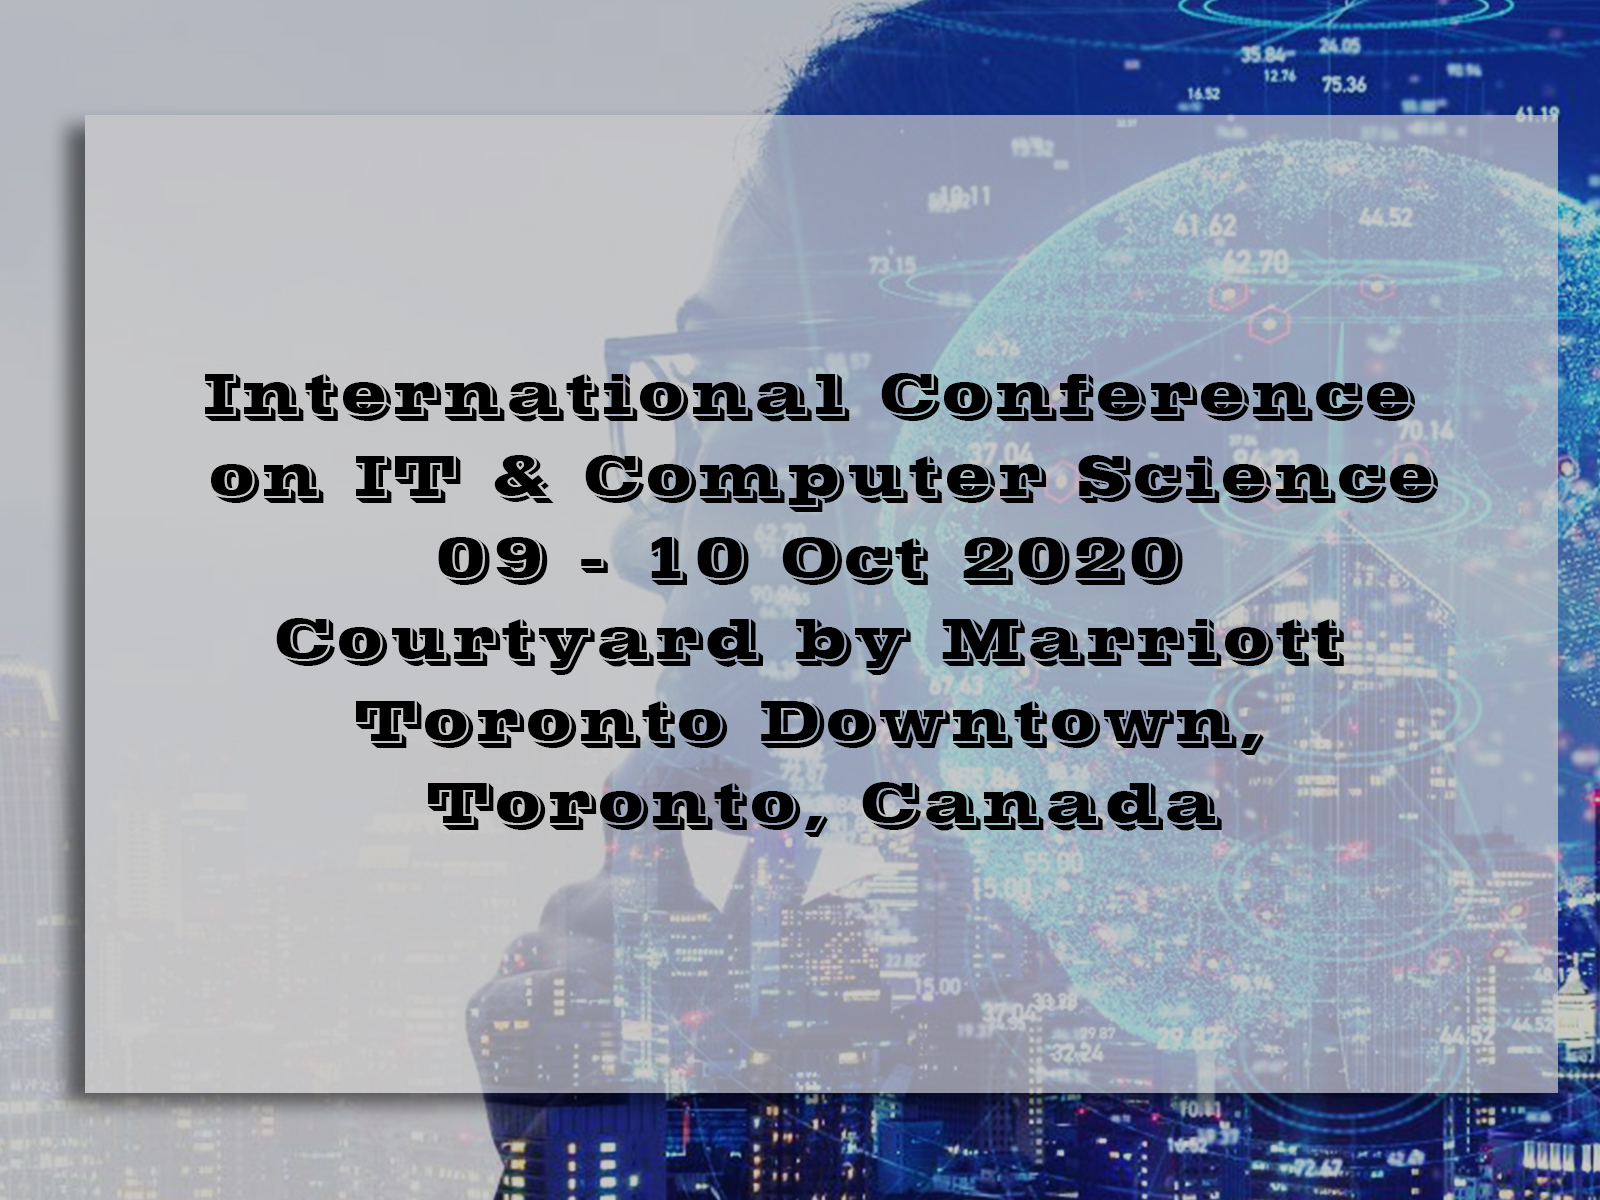 International Conference on IT & Computer Science